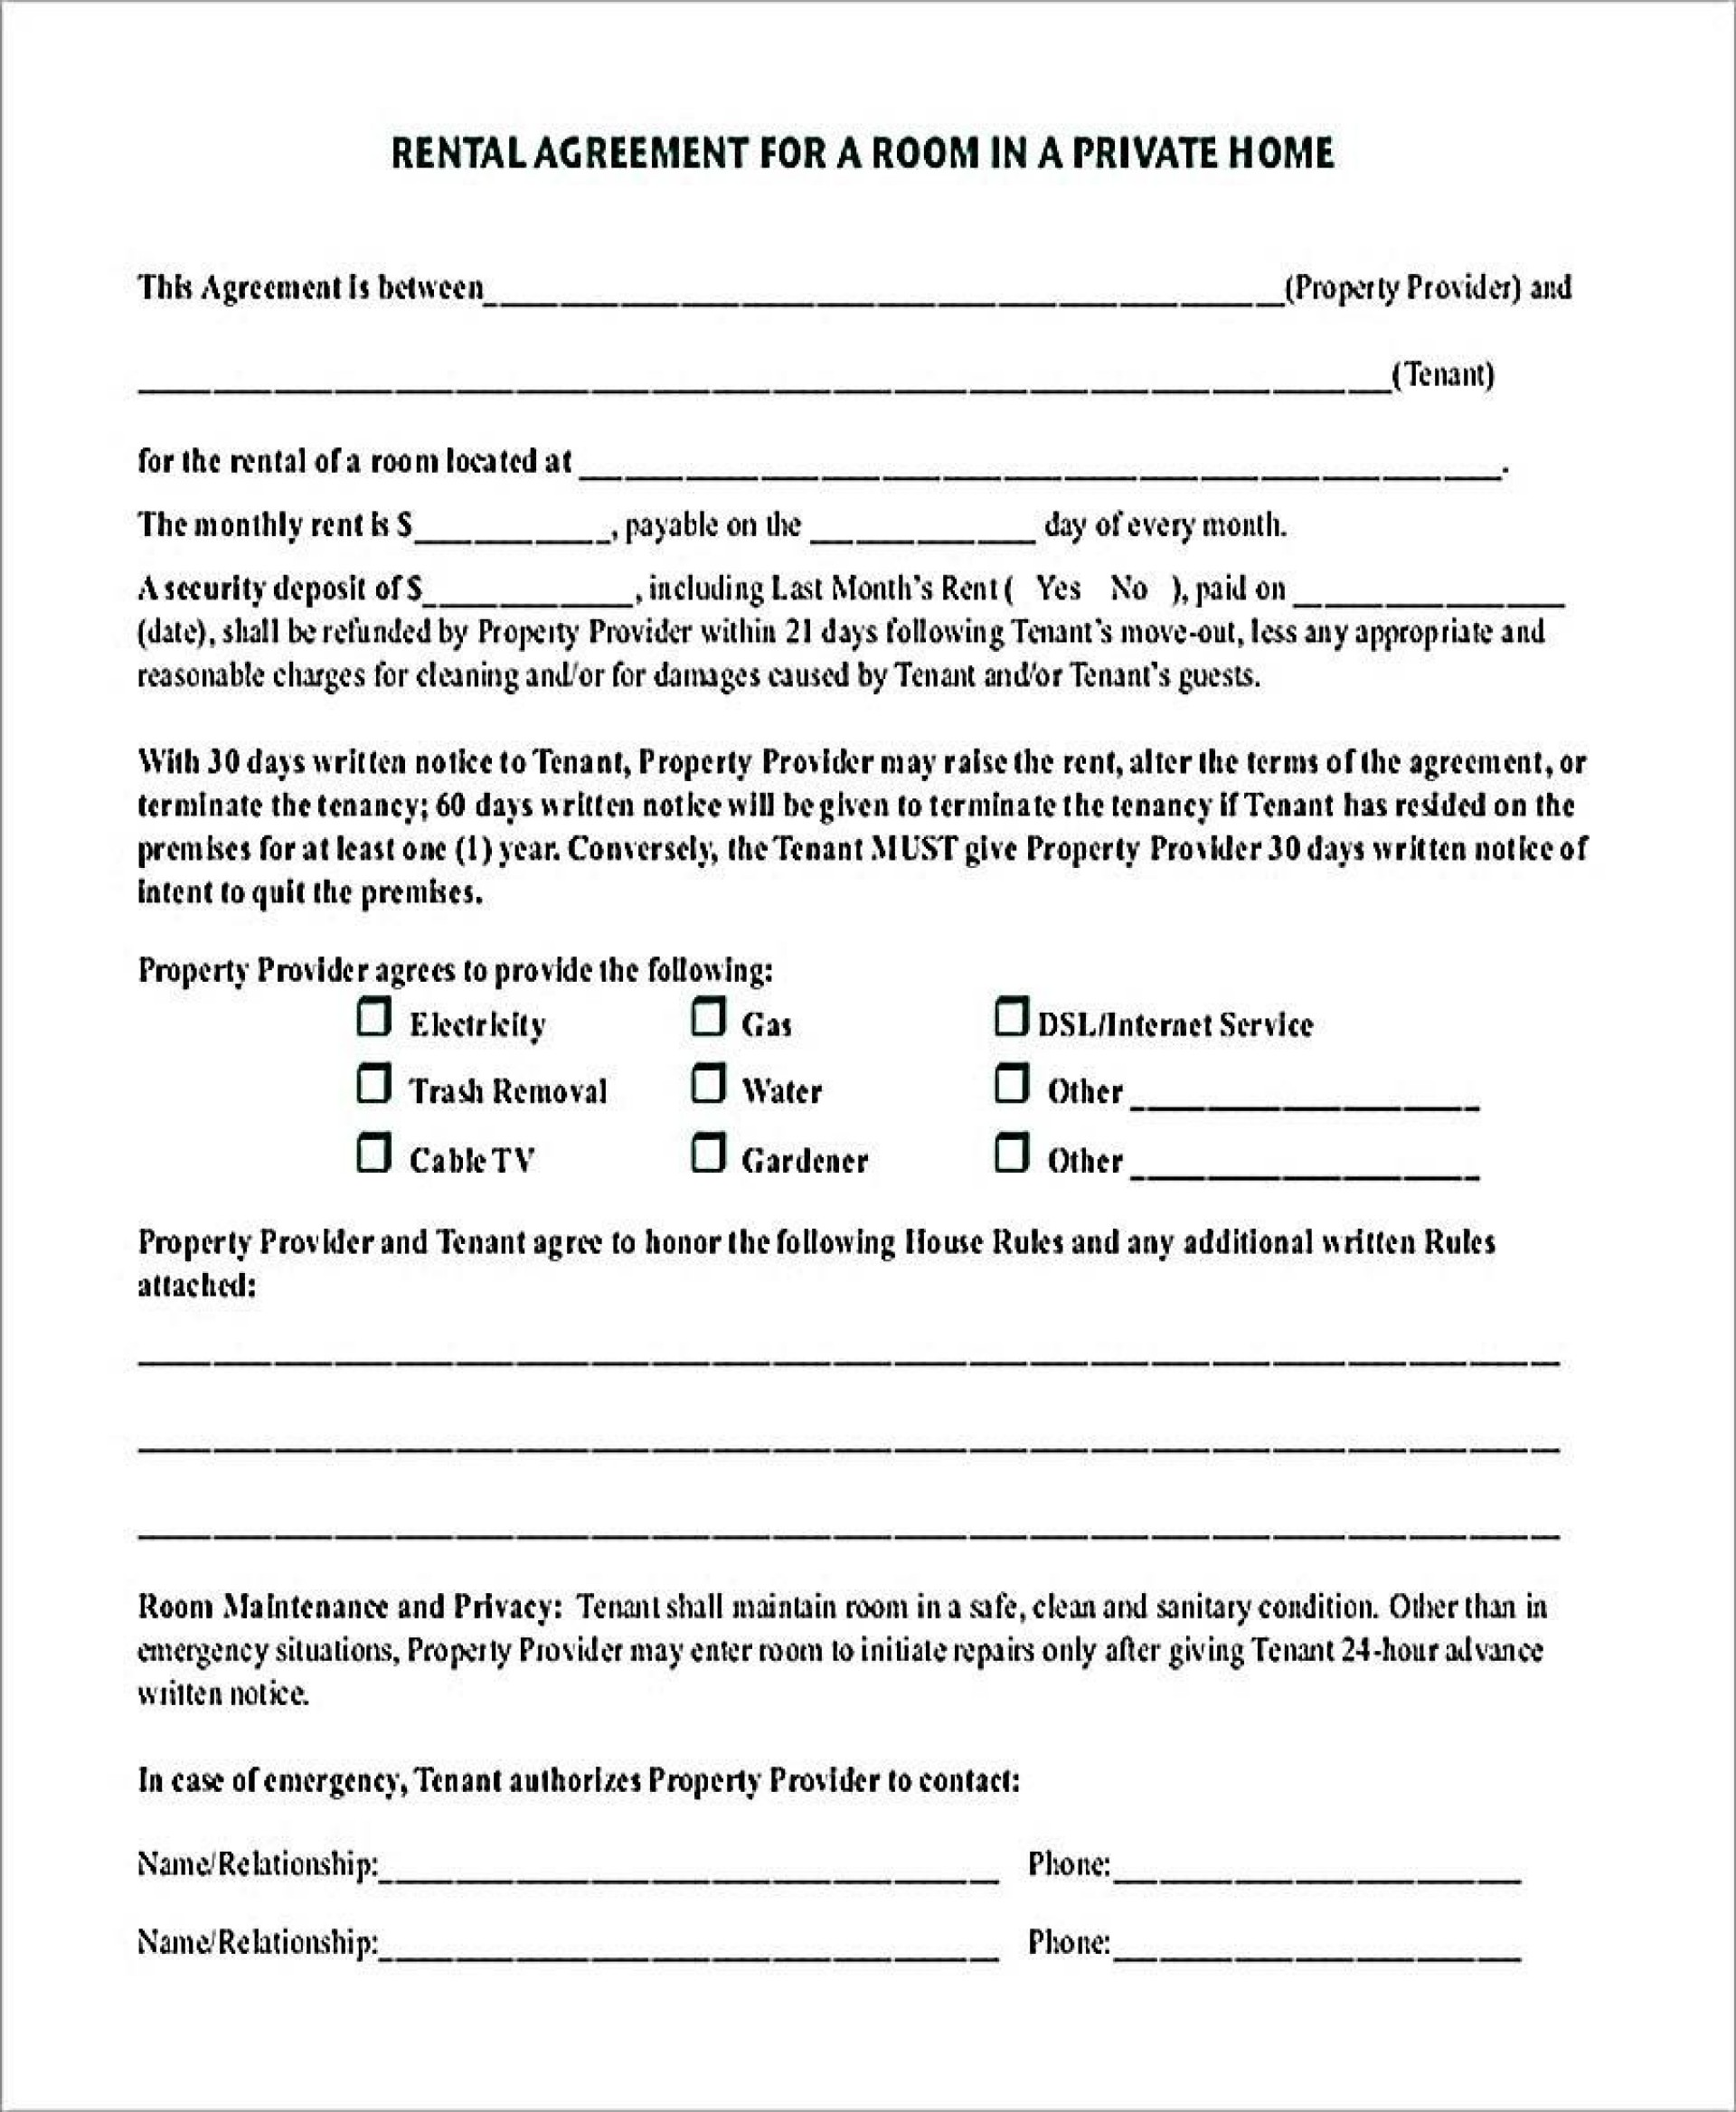 002 Impressive Rent Lease Agreement Template Picture  Tenancy Landlord Form Bc House Rental Pdf1920